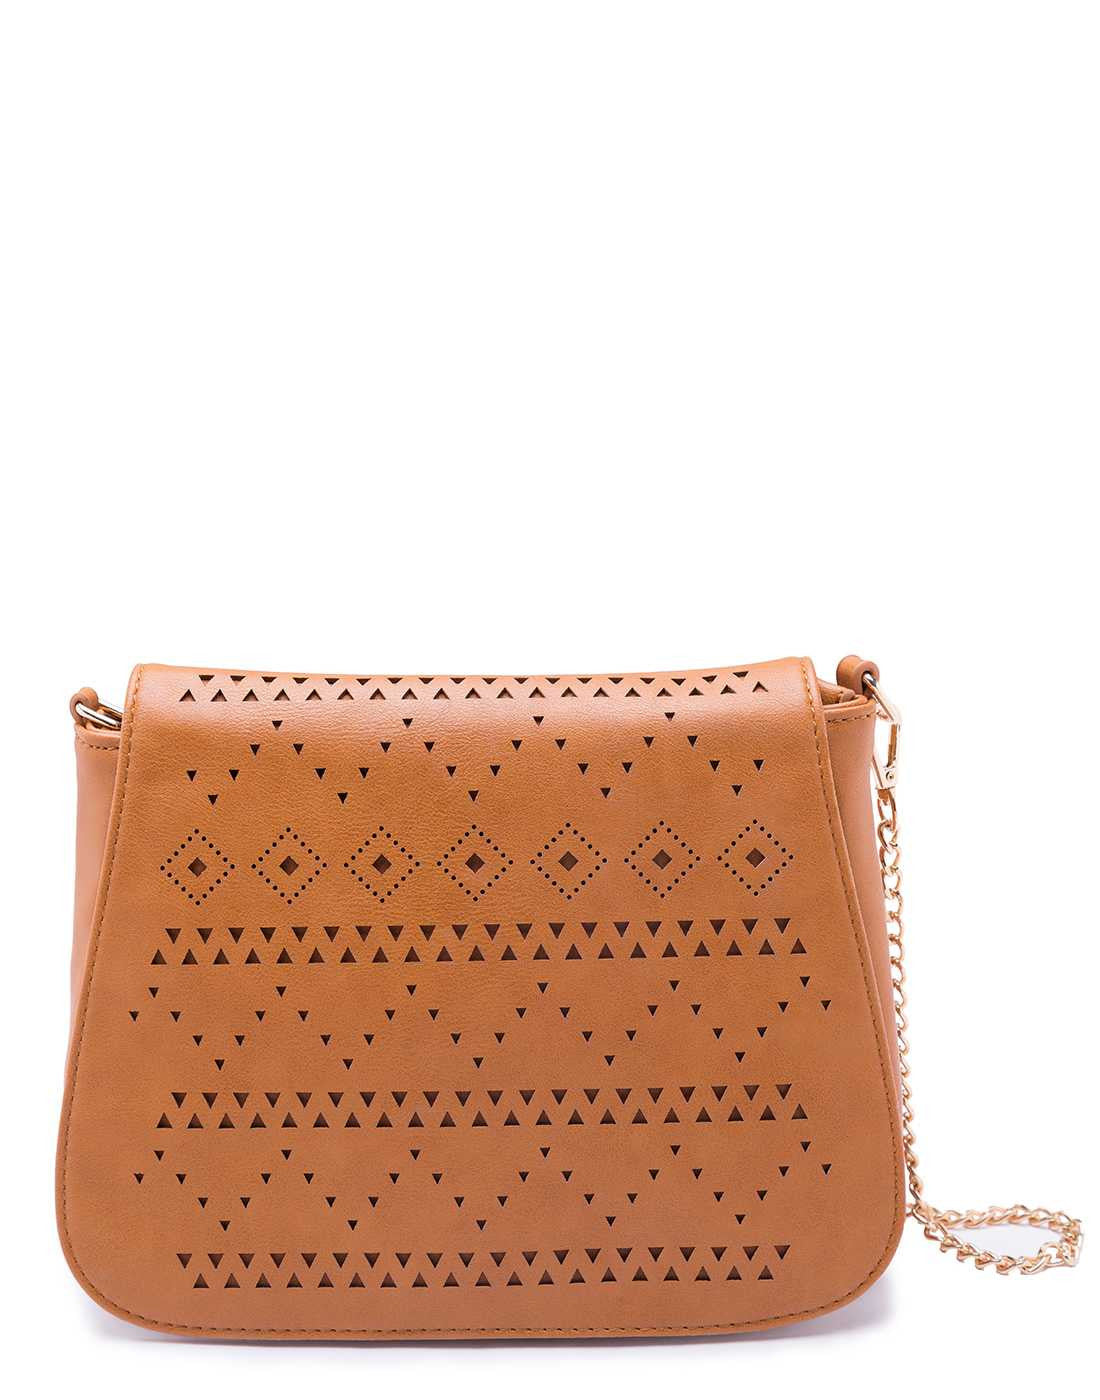 Tan Sling Bag with Laser Cut Flap